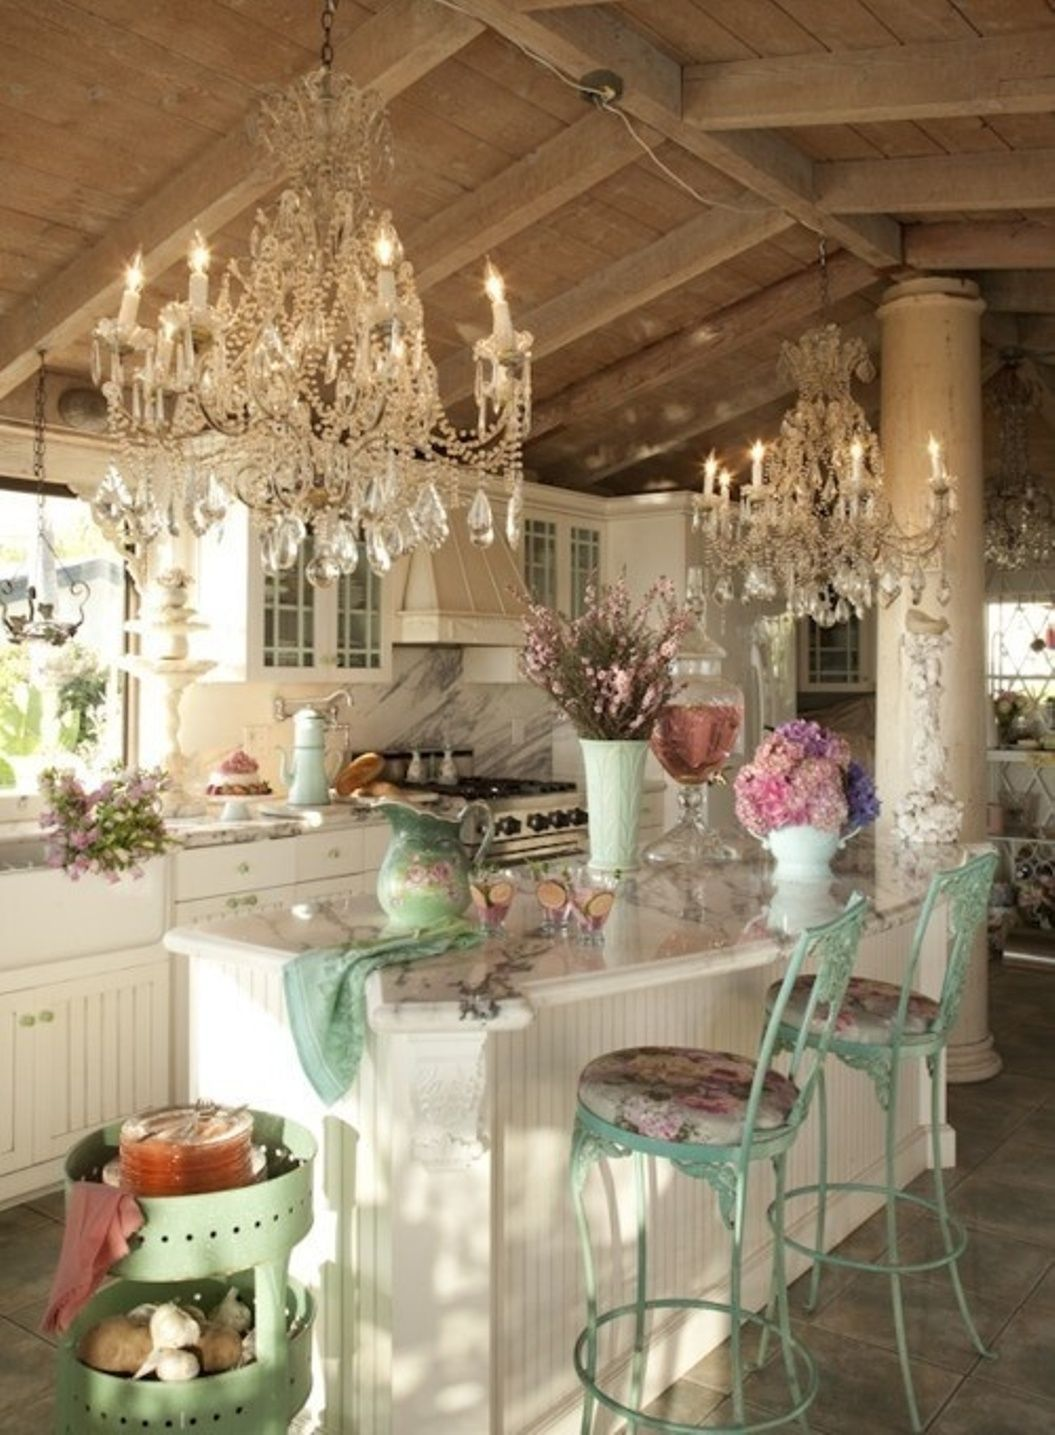 25 charming shabby chic style kitchen designs shabby kitchens 25 charming shabby chic style kitchen designs